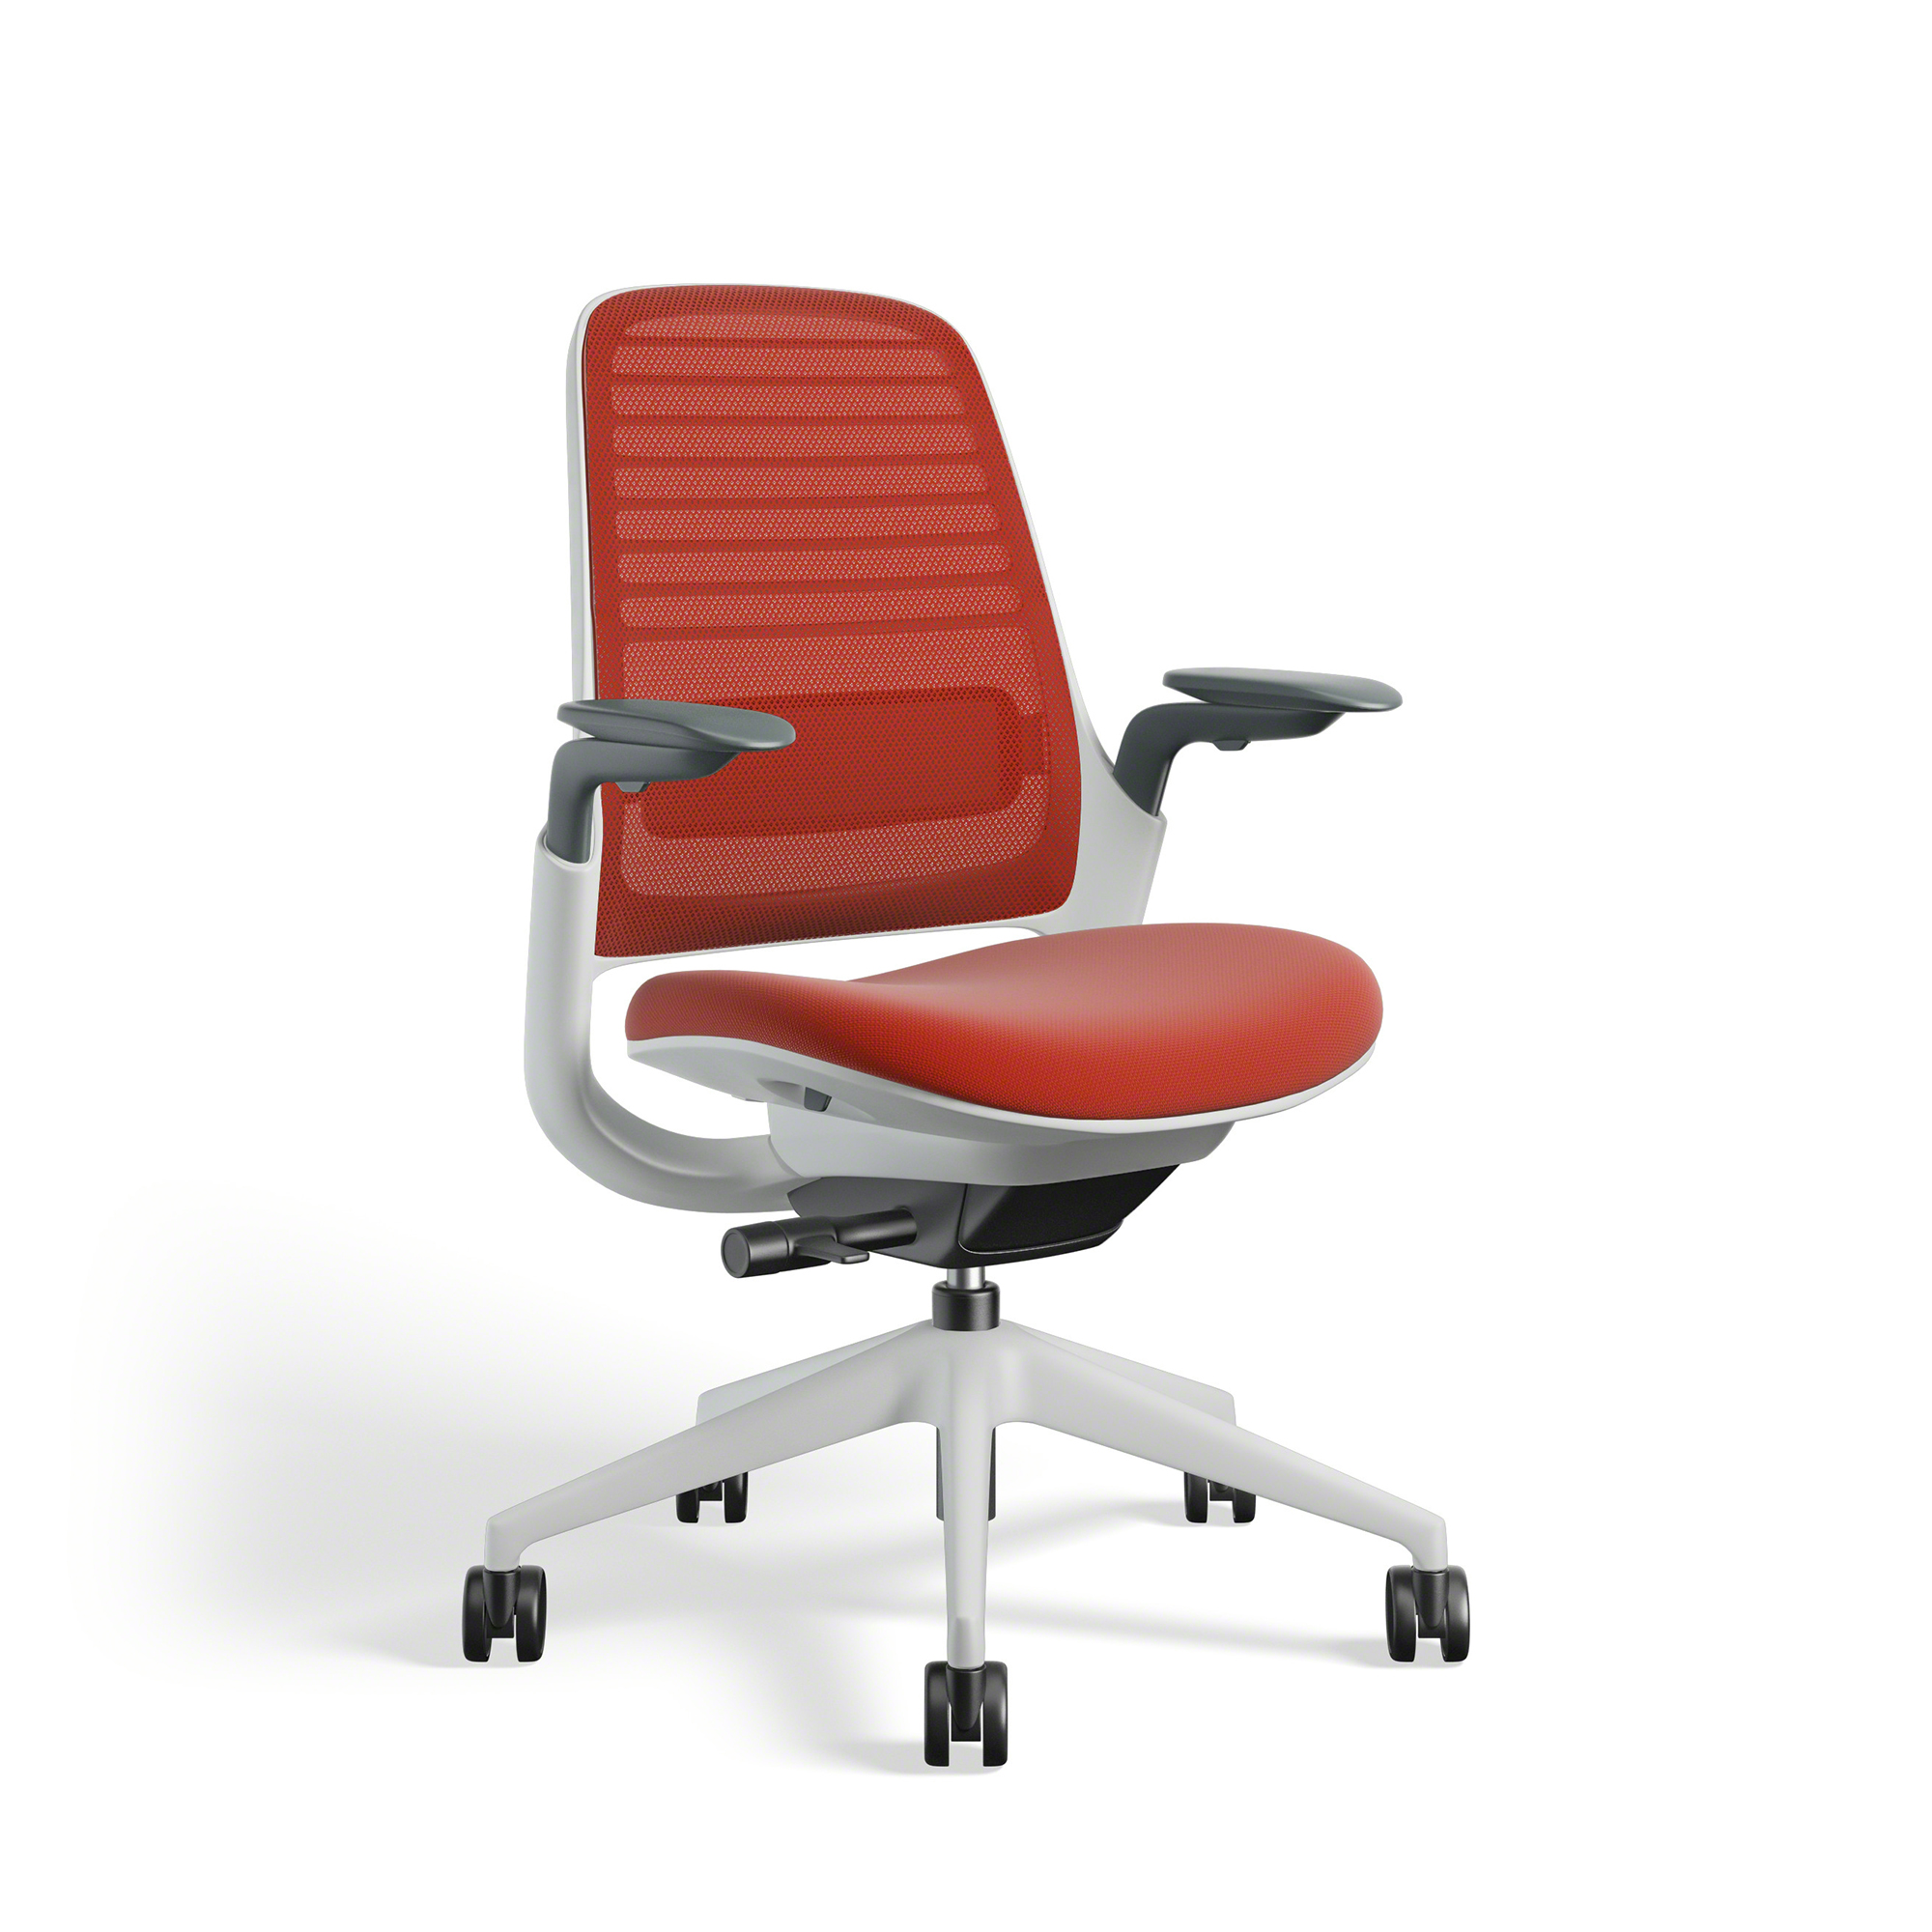 Fit Chair Red Steelcase Series 1 Chair White Frame Office Furniture Poppin